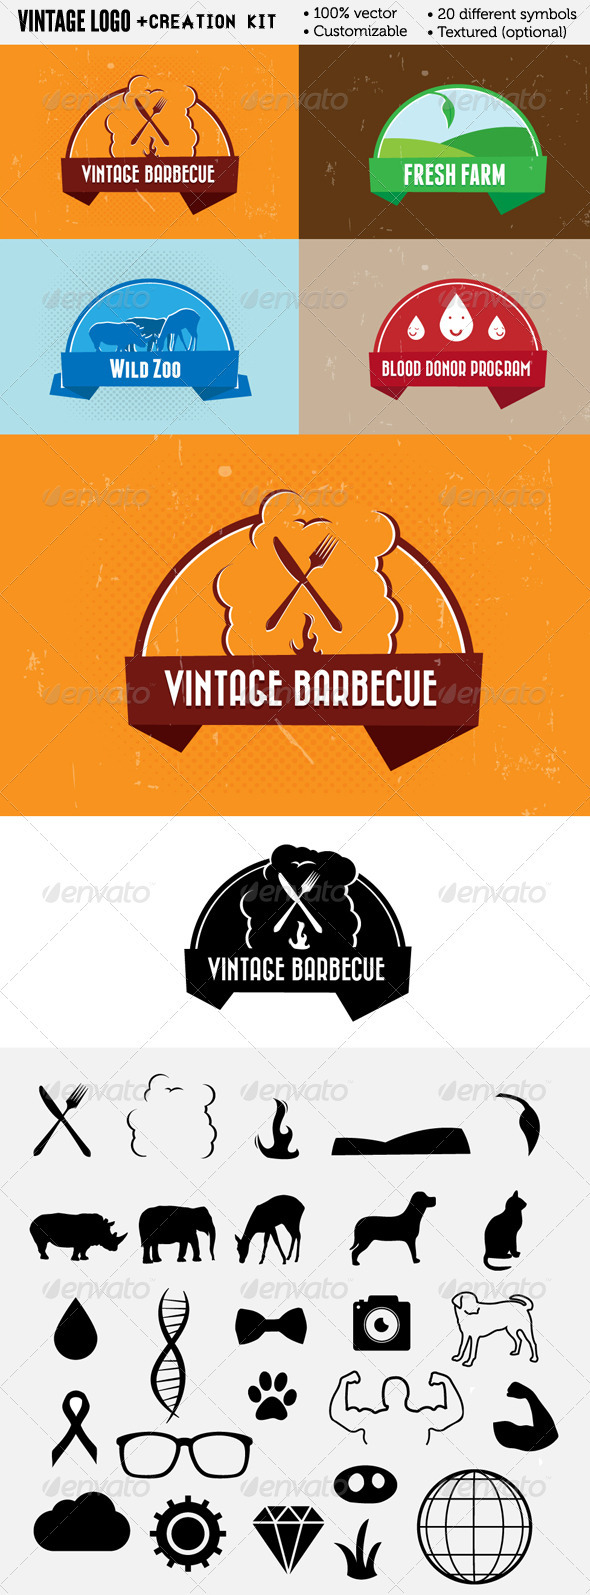 GraphicRiver Vintage logos & Creation kit 3332197